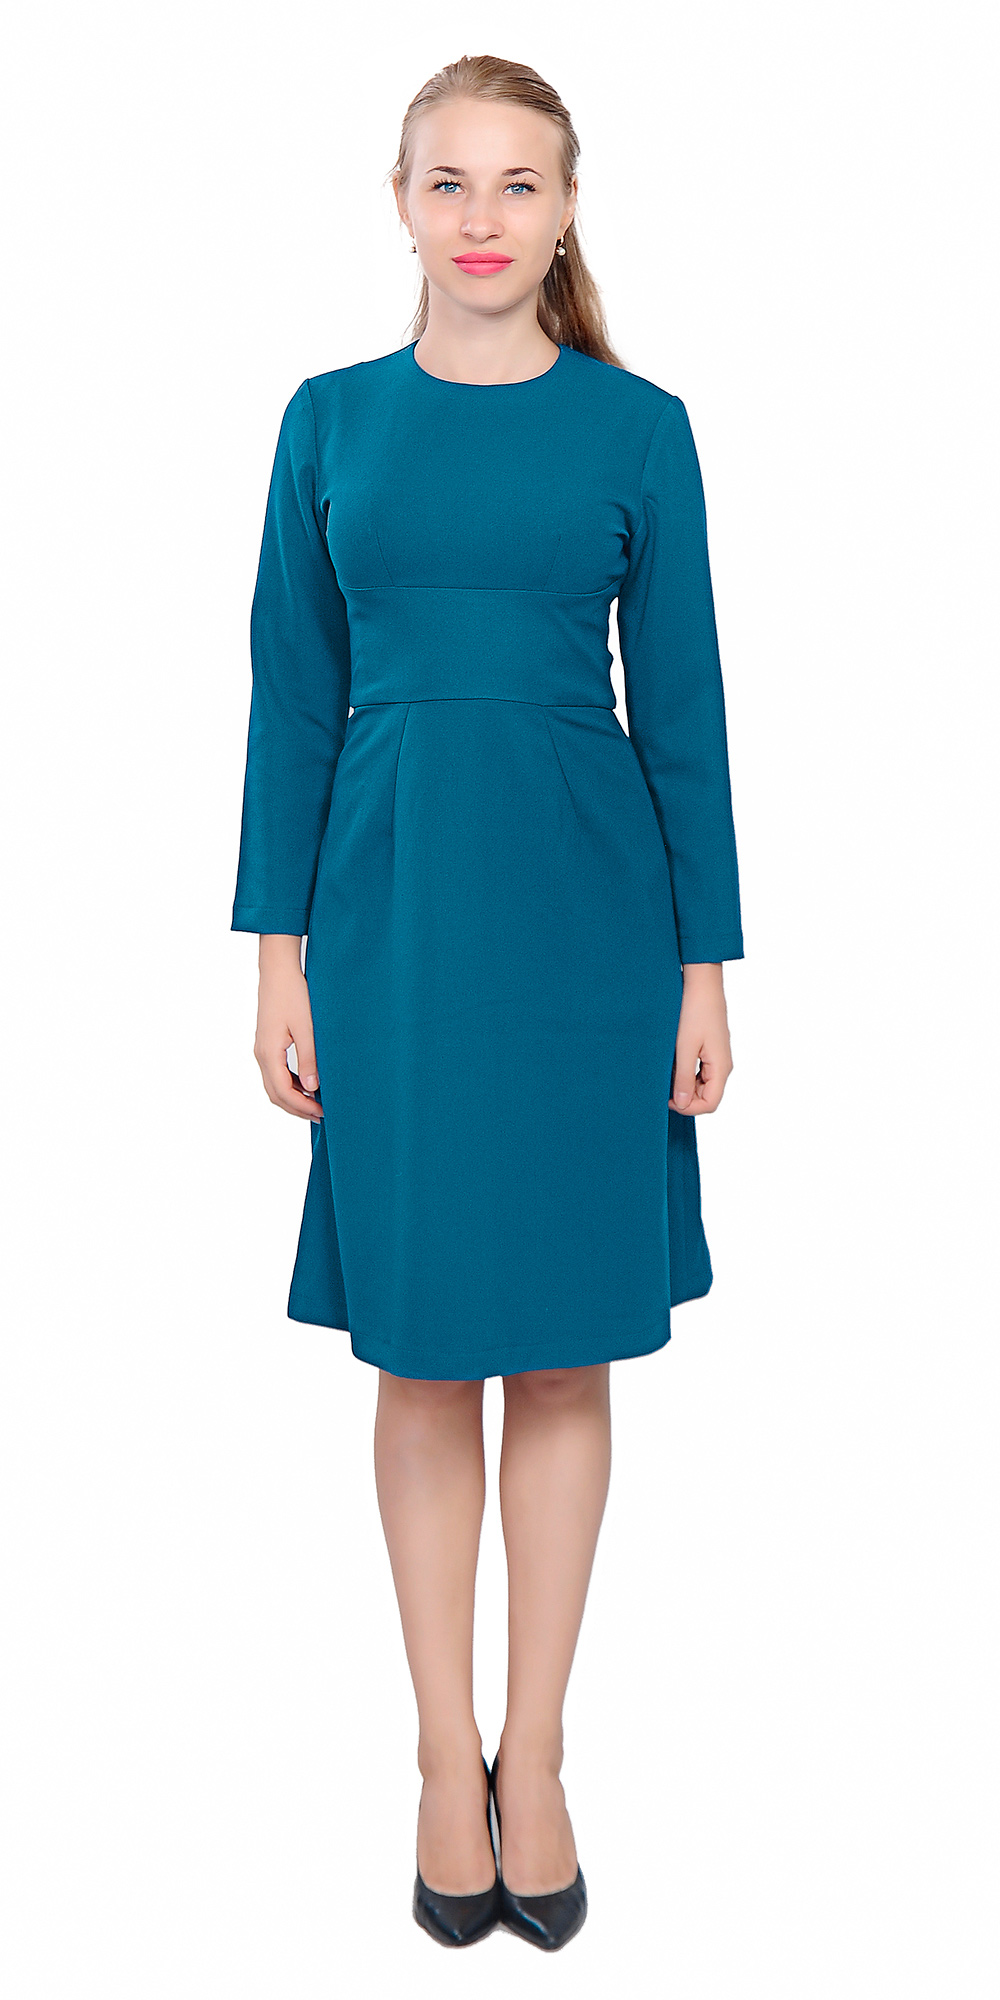 Free shipping A-Line Dresses Online Store. Best Dresses for sale. Cheap A-Line Dresses with excellent quality and fast delivery.   dvlnpxiuf.ga English. English; Vintage Style Plunging Neck 3/4 Sleeve Full Floral Print Elastic Waist Front Slit Women's Maxi Dress (64% OFF) Priority Dispatch. Priority Dispatch Priority Dispatch (22).